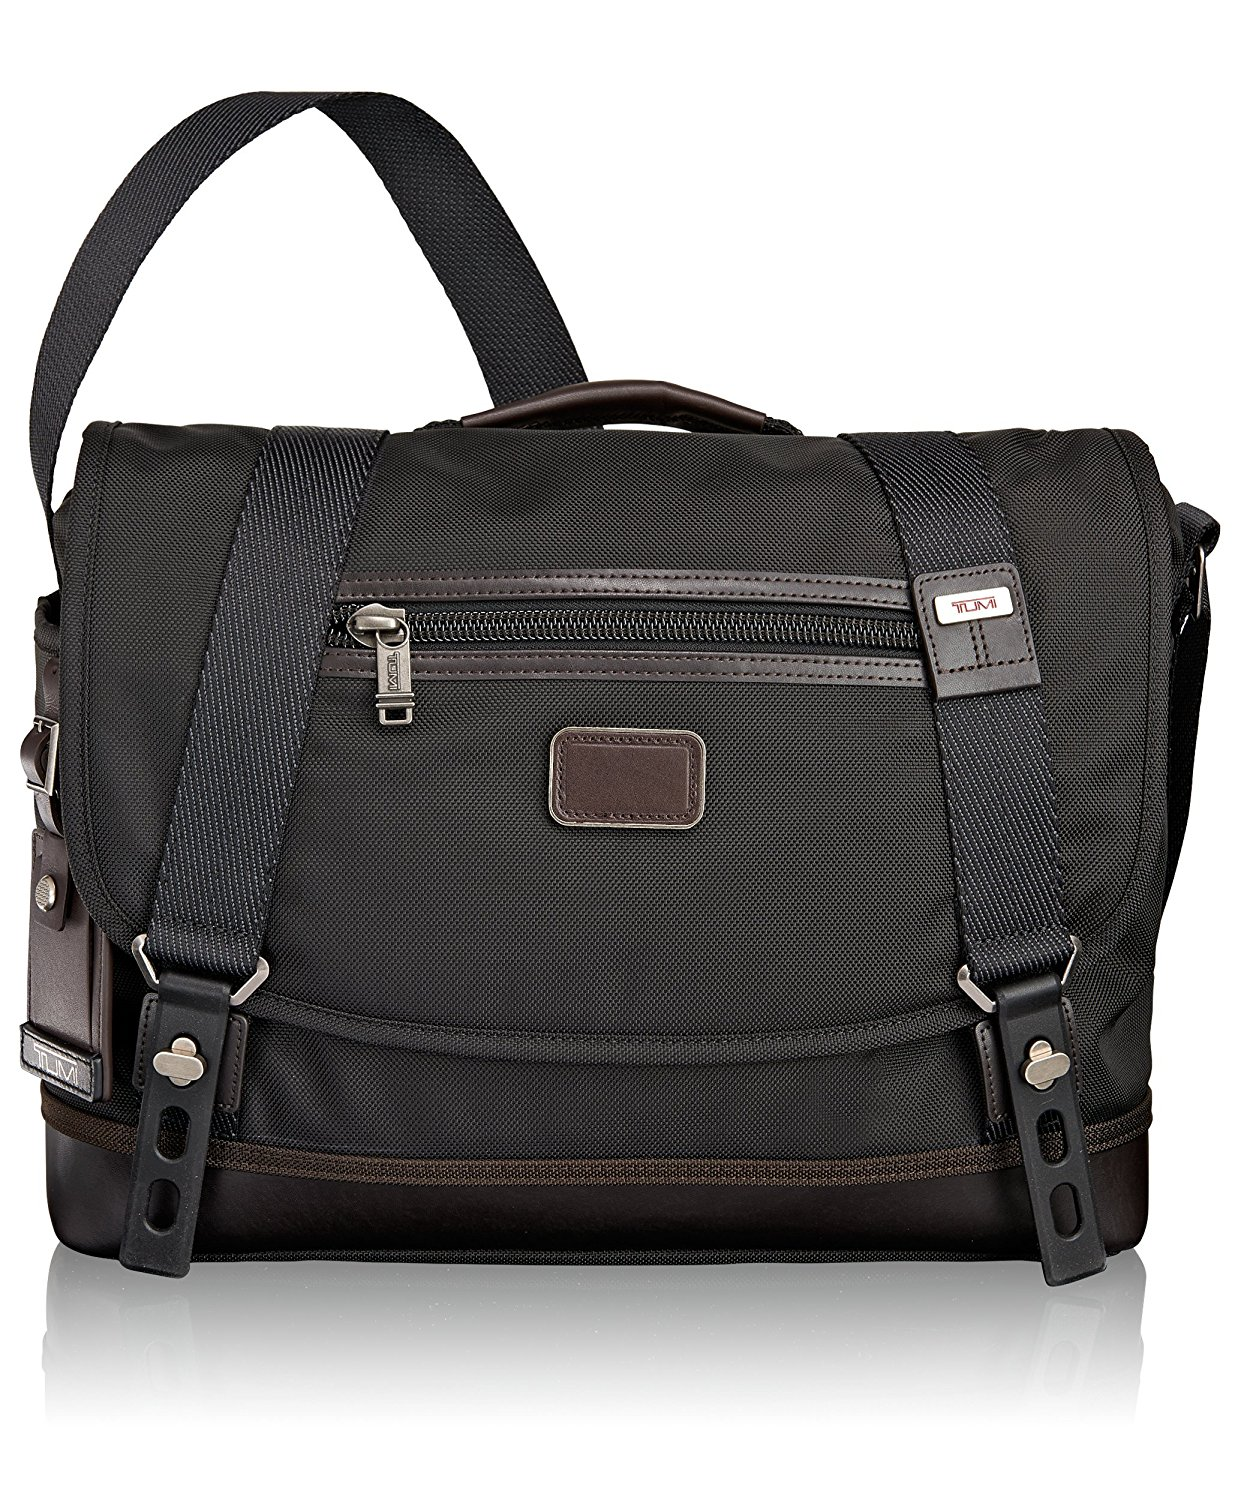 Elegant Tumi Alpha Bravo for Cool Travel Bag Ideas: Tumi Alpha Bravo | Tumi Alpha Bravo Mcnair Slim Brief | Tumi Alpha Bravo Backpack